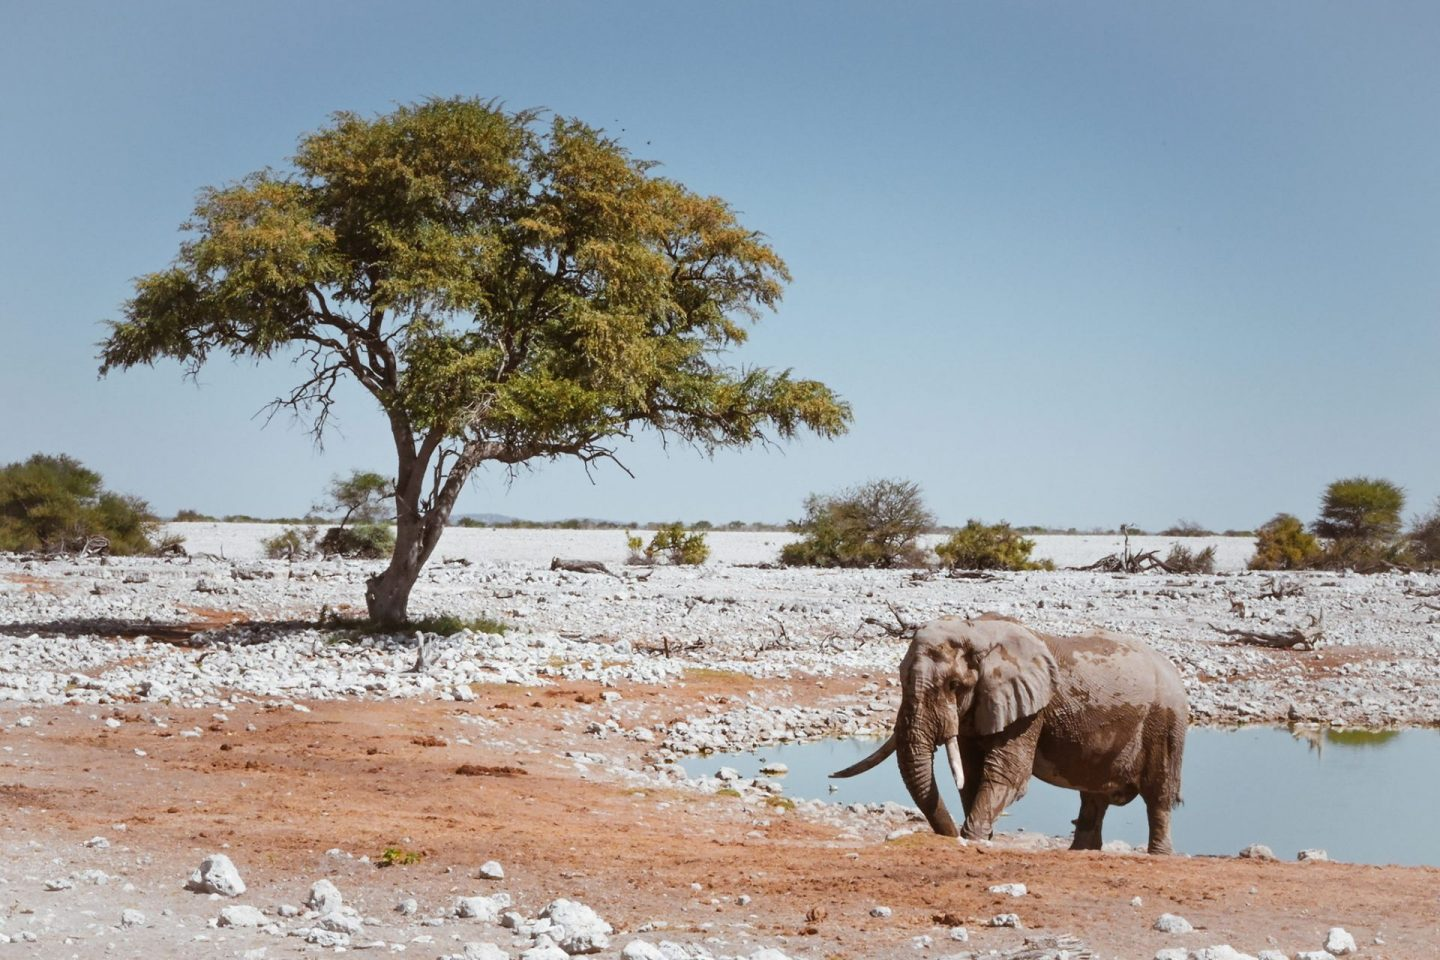 Elephant at Okaukuejo Waterhole in Etosha National Park, Namibia